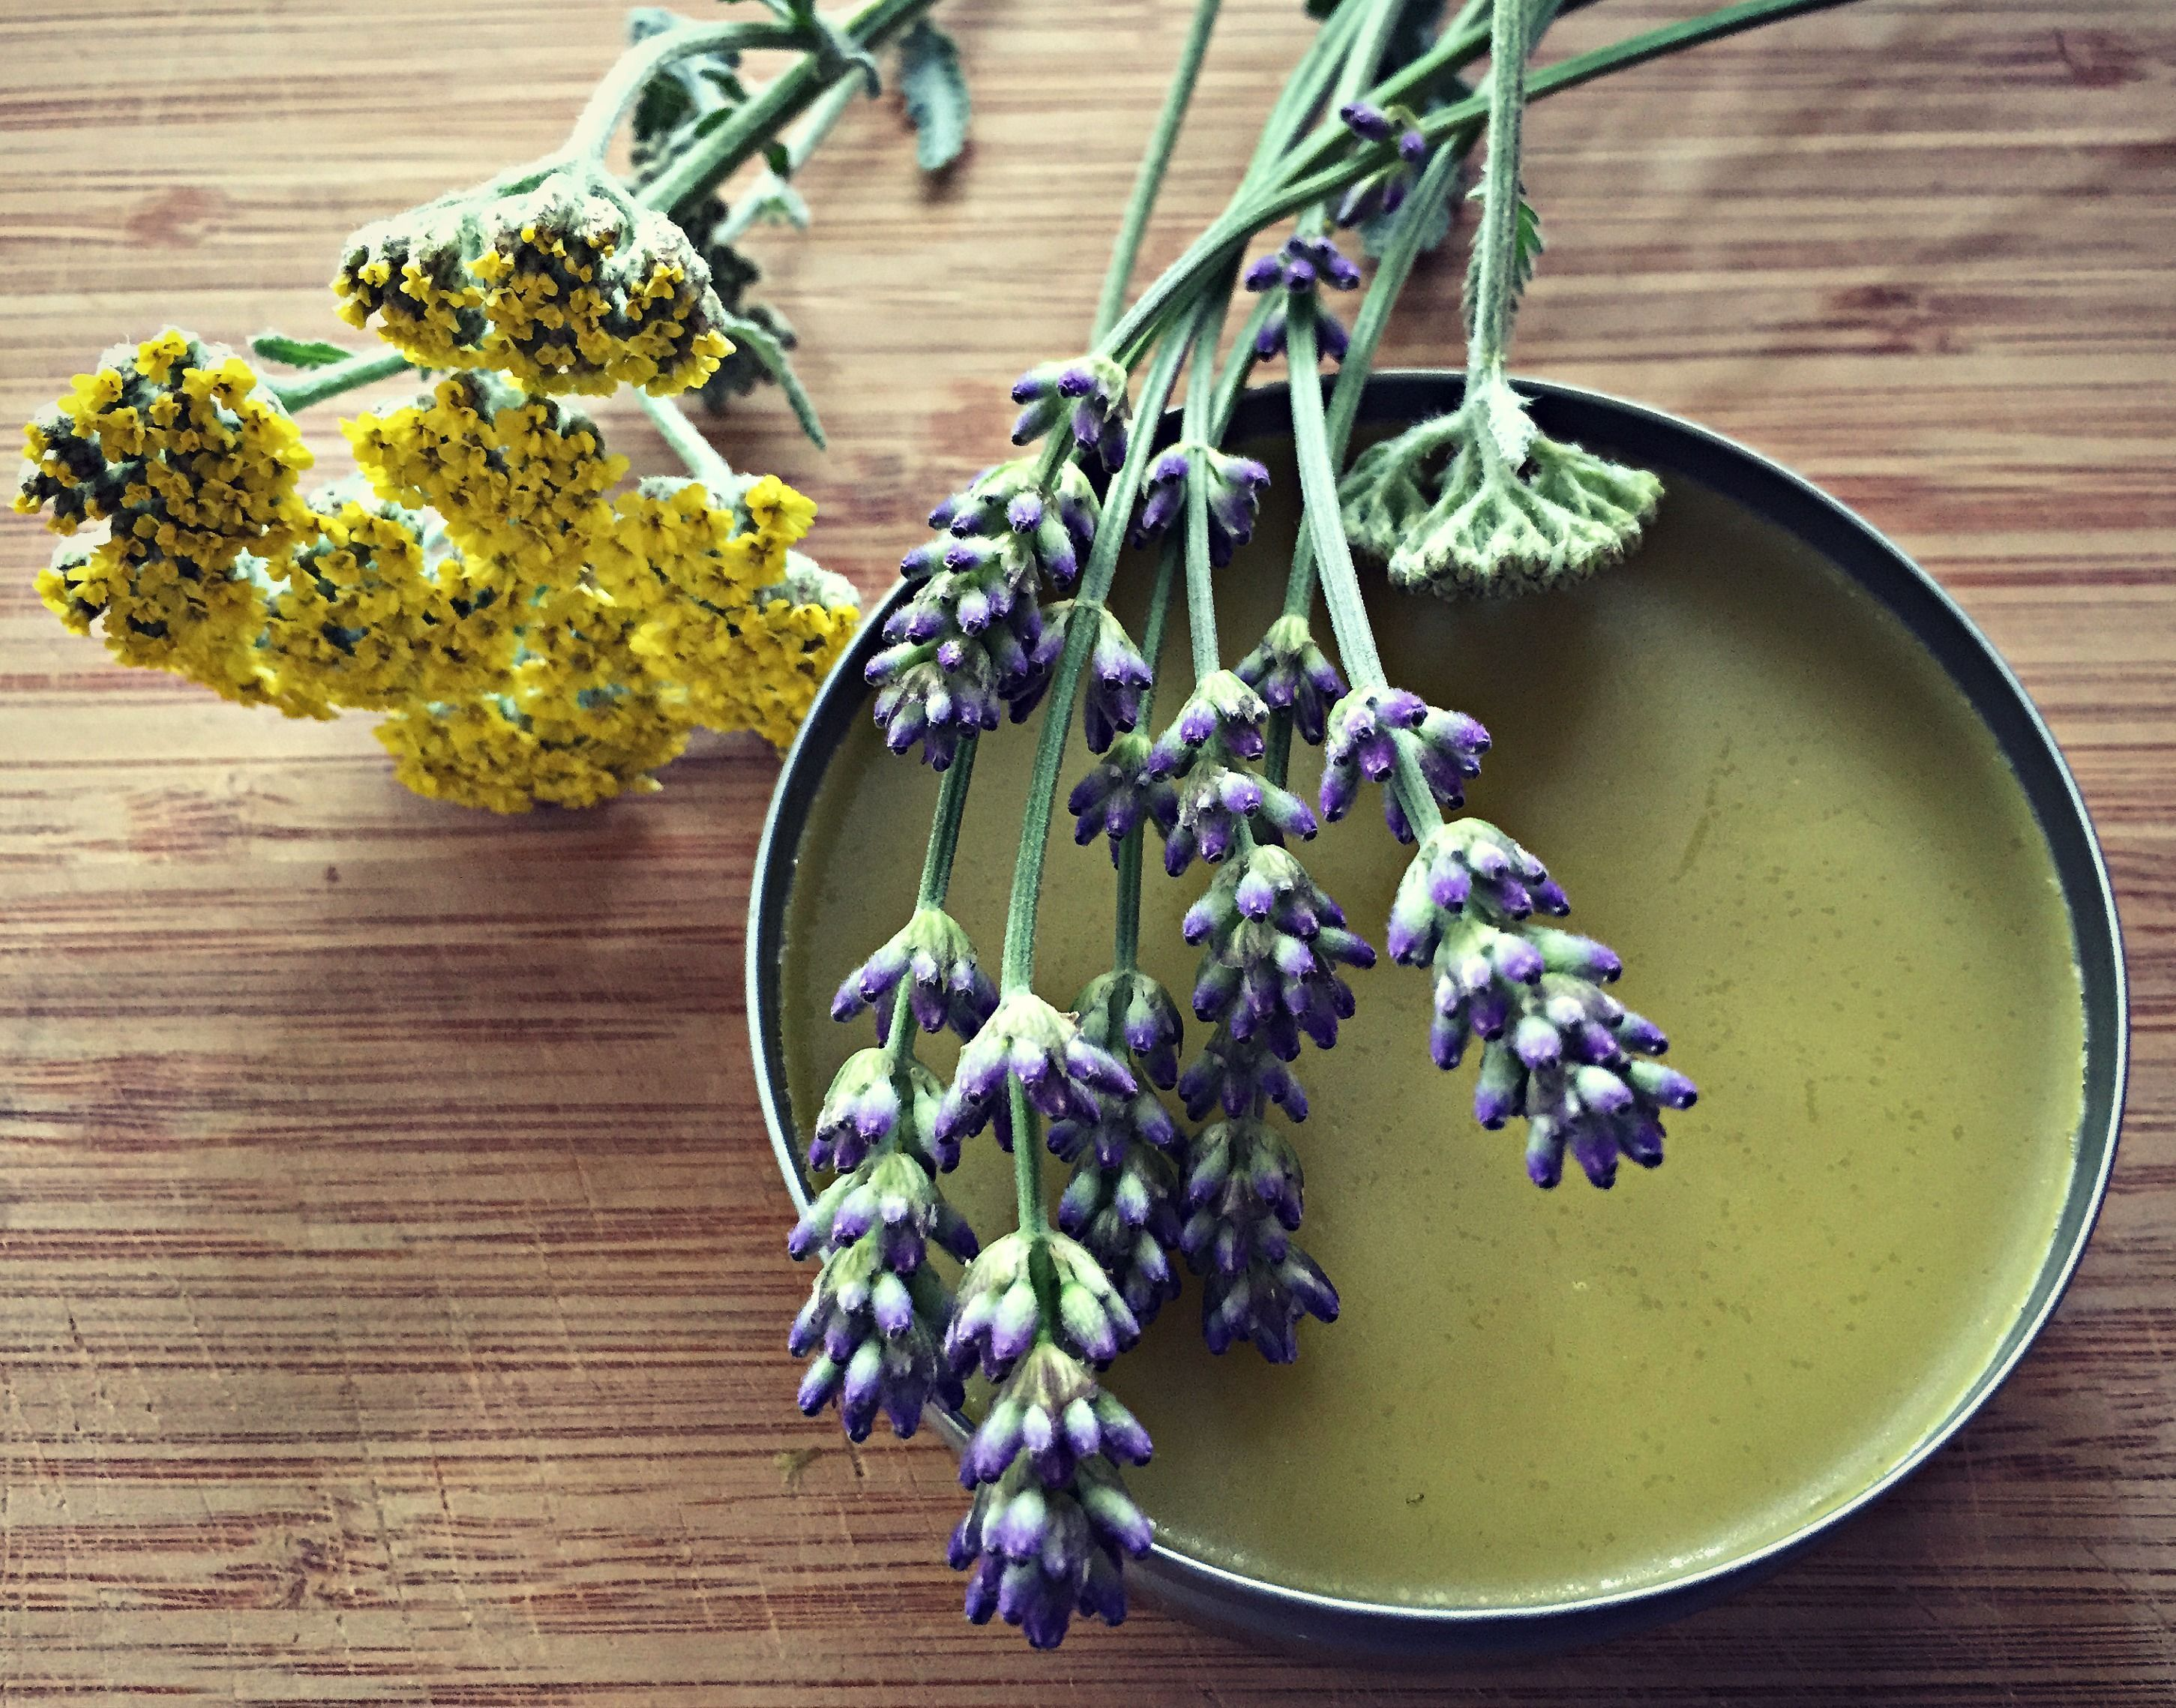 pictures How to Make Lavender Healing Salve